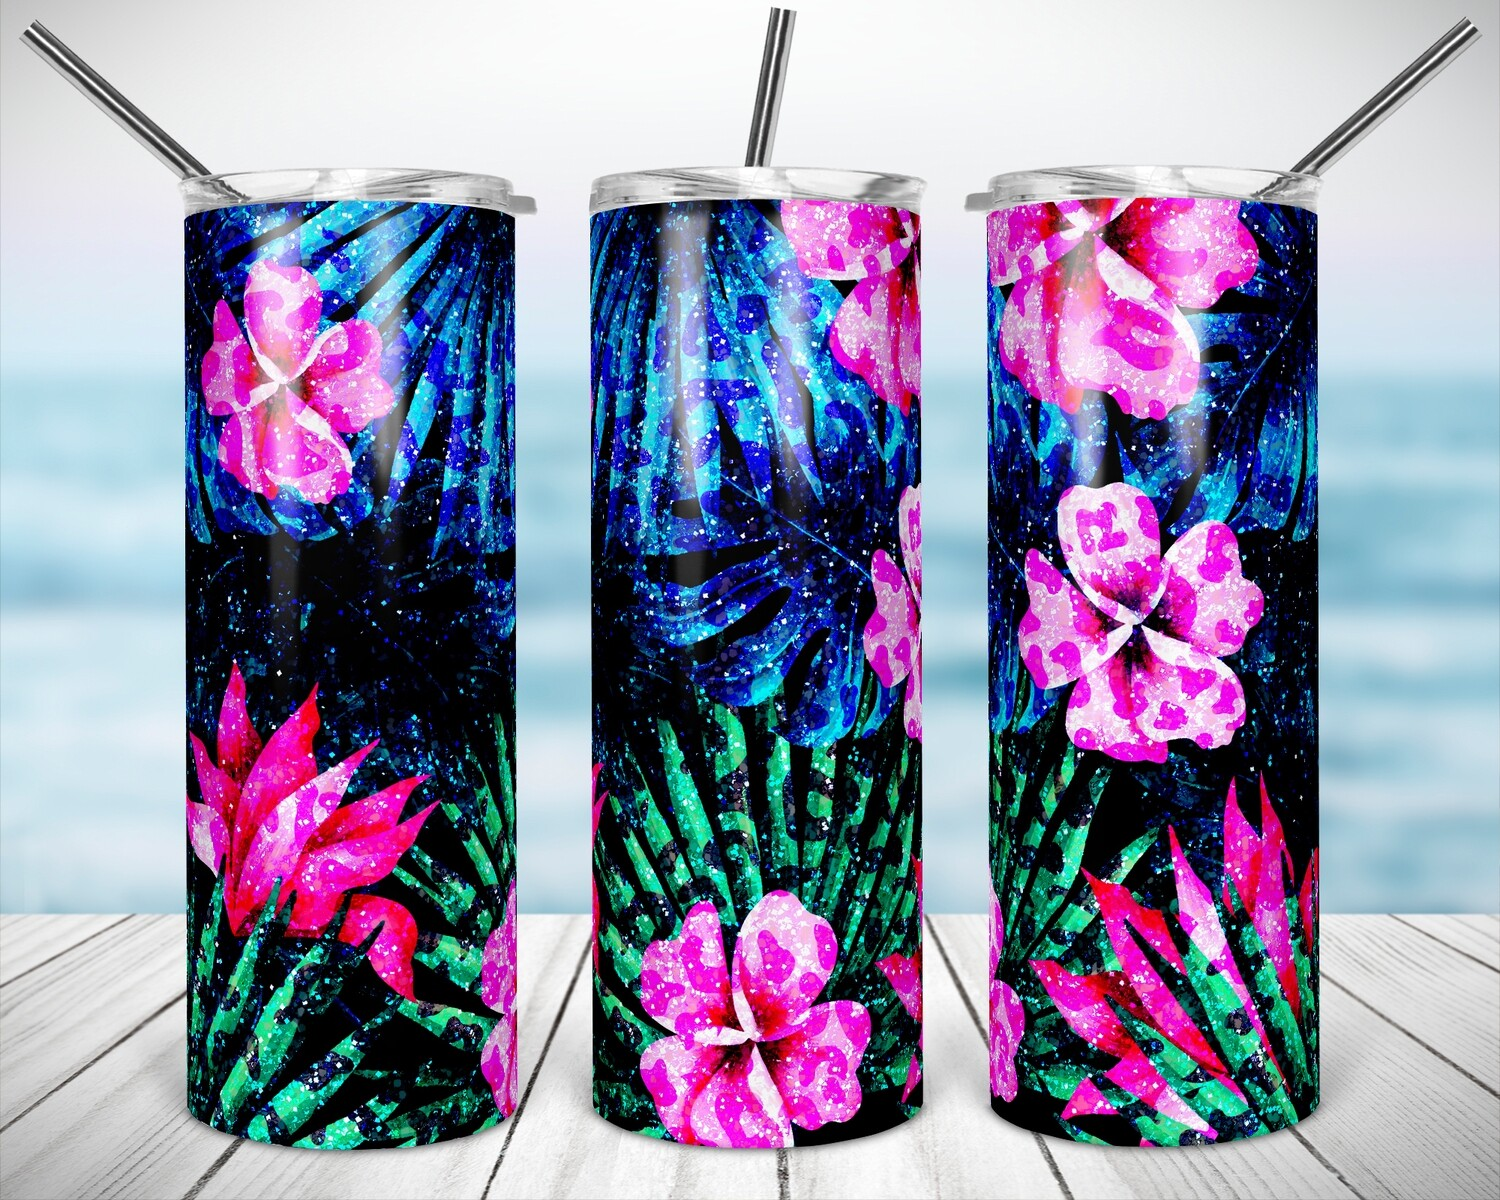 Tropical Cheetah Flowers 20/30oz Taper + STRAIGHT TUMBLER PNG Sublimation